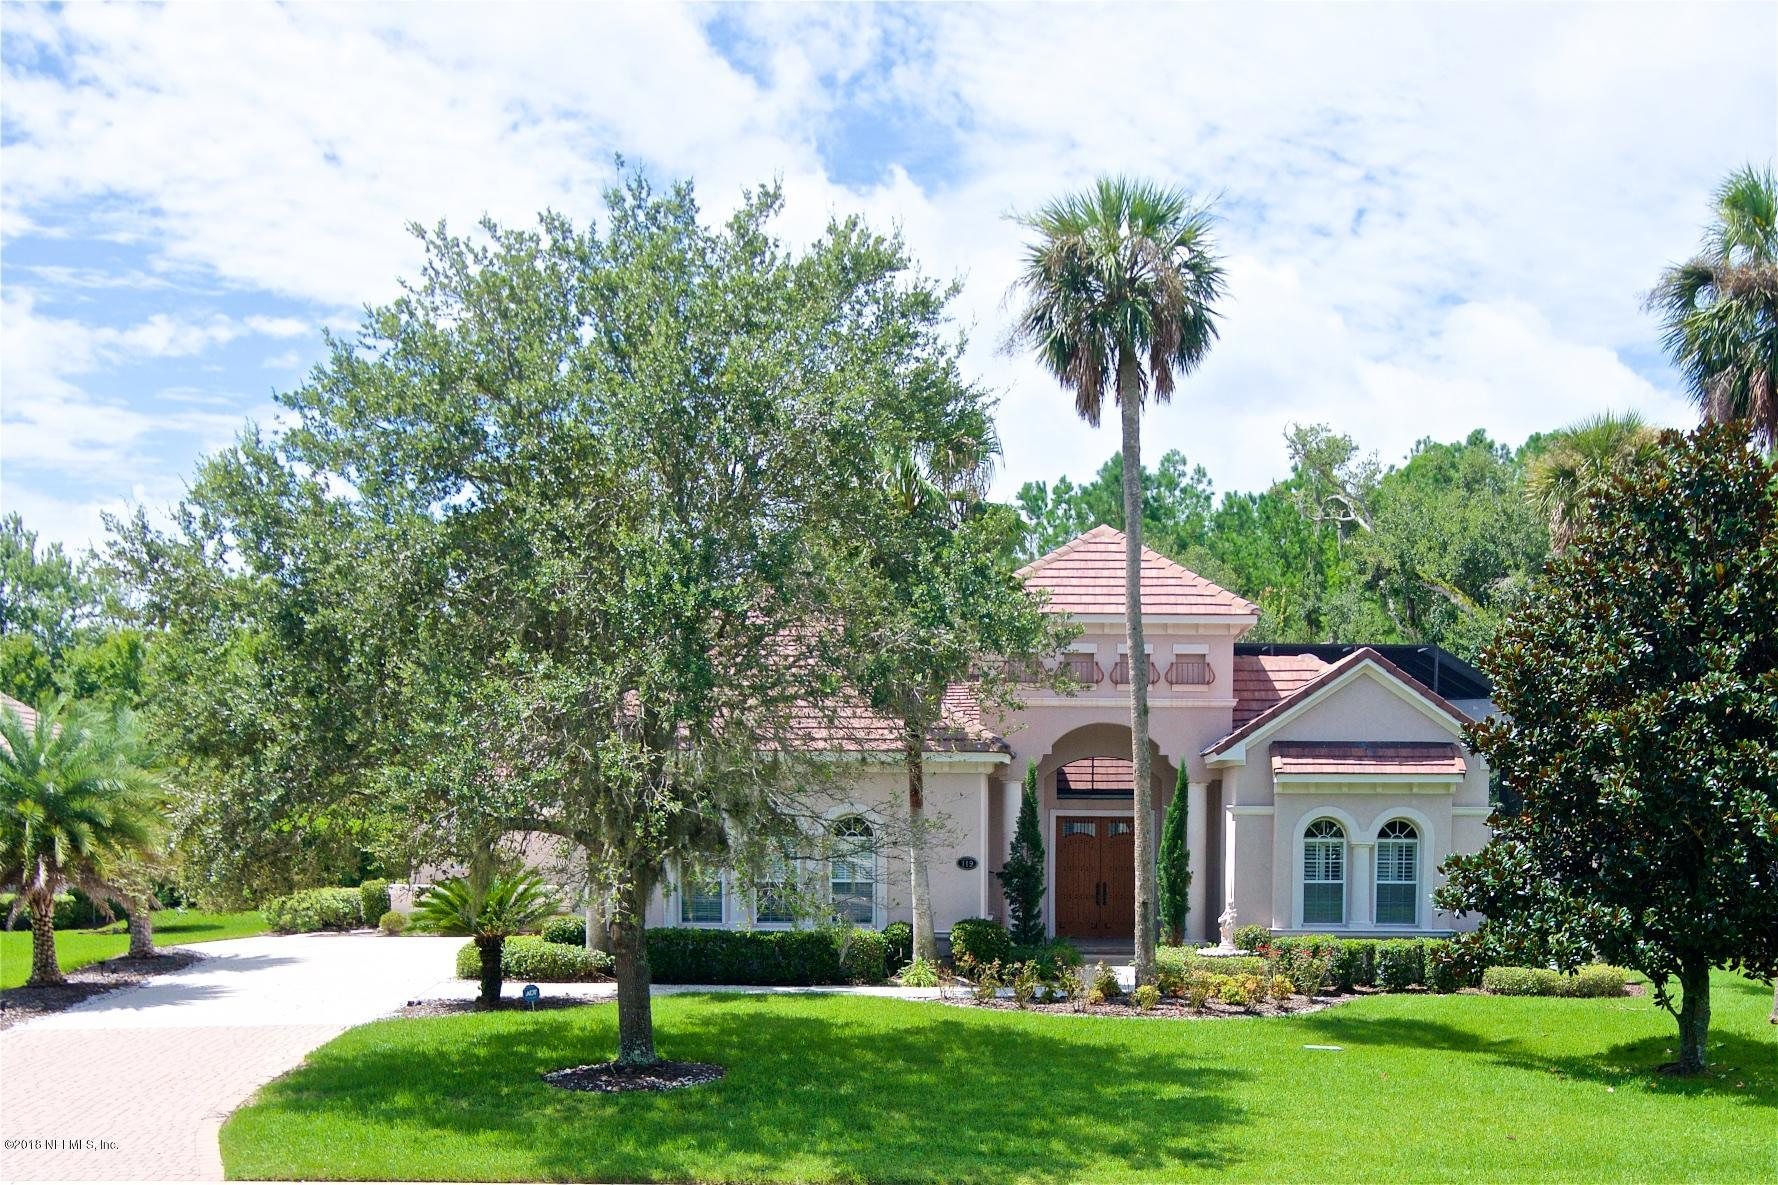 119 MUIRFIELD, PONTE VEDRA BEACH, FLORIDA 32082, 3 Bedrooms Bedrooms, ,3 BathroomsBathrooms,Residential - single family,For sale,MUIRFIELD,955175